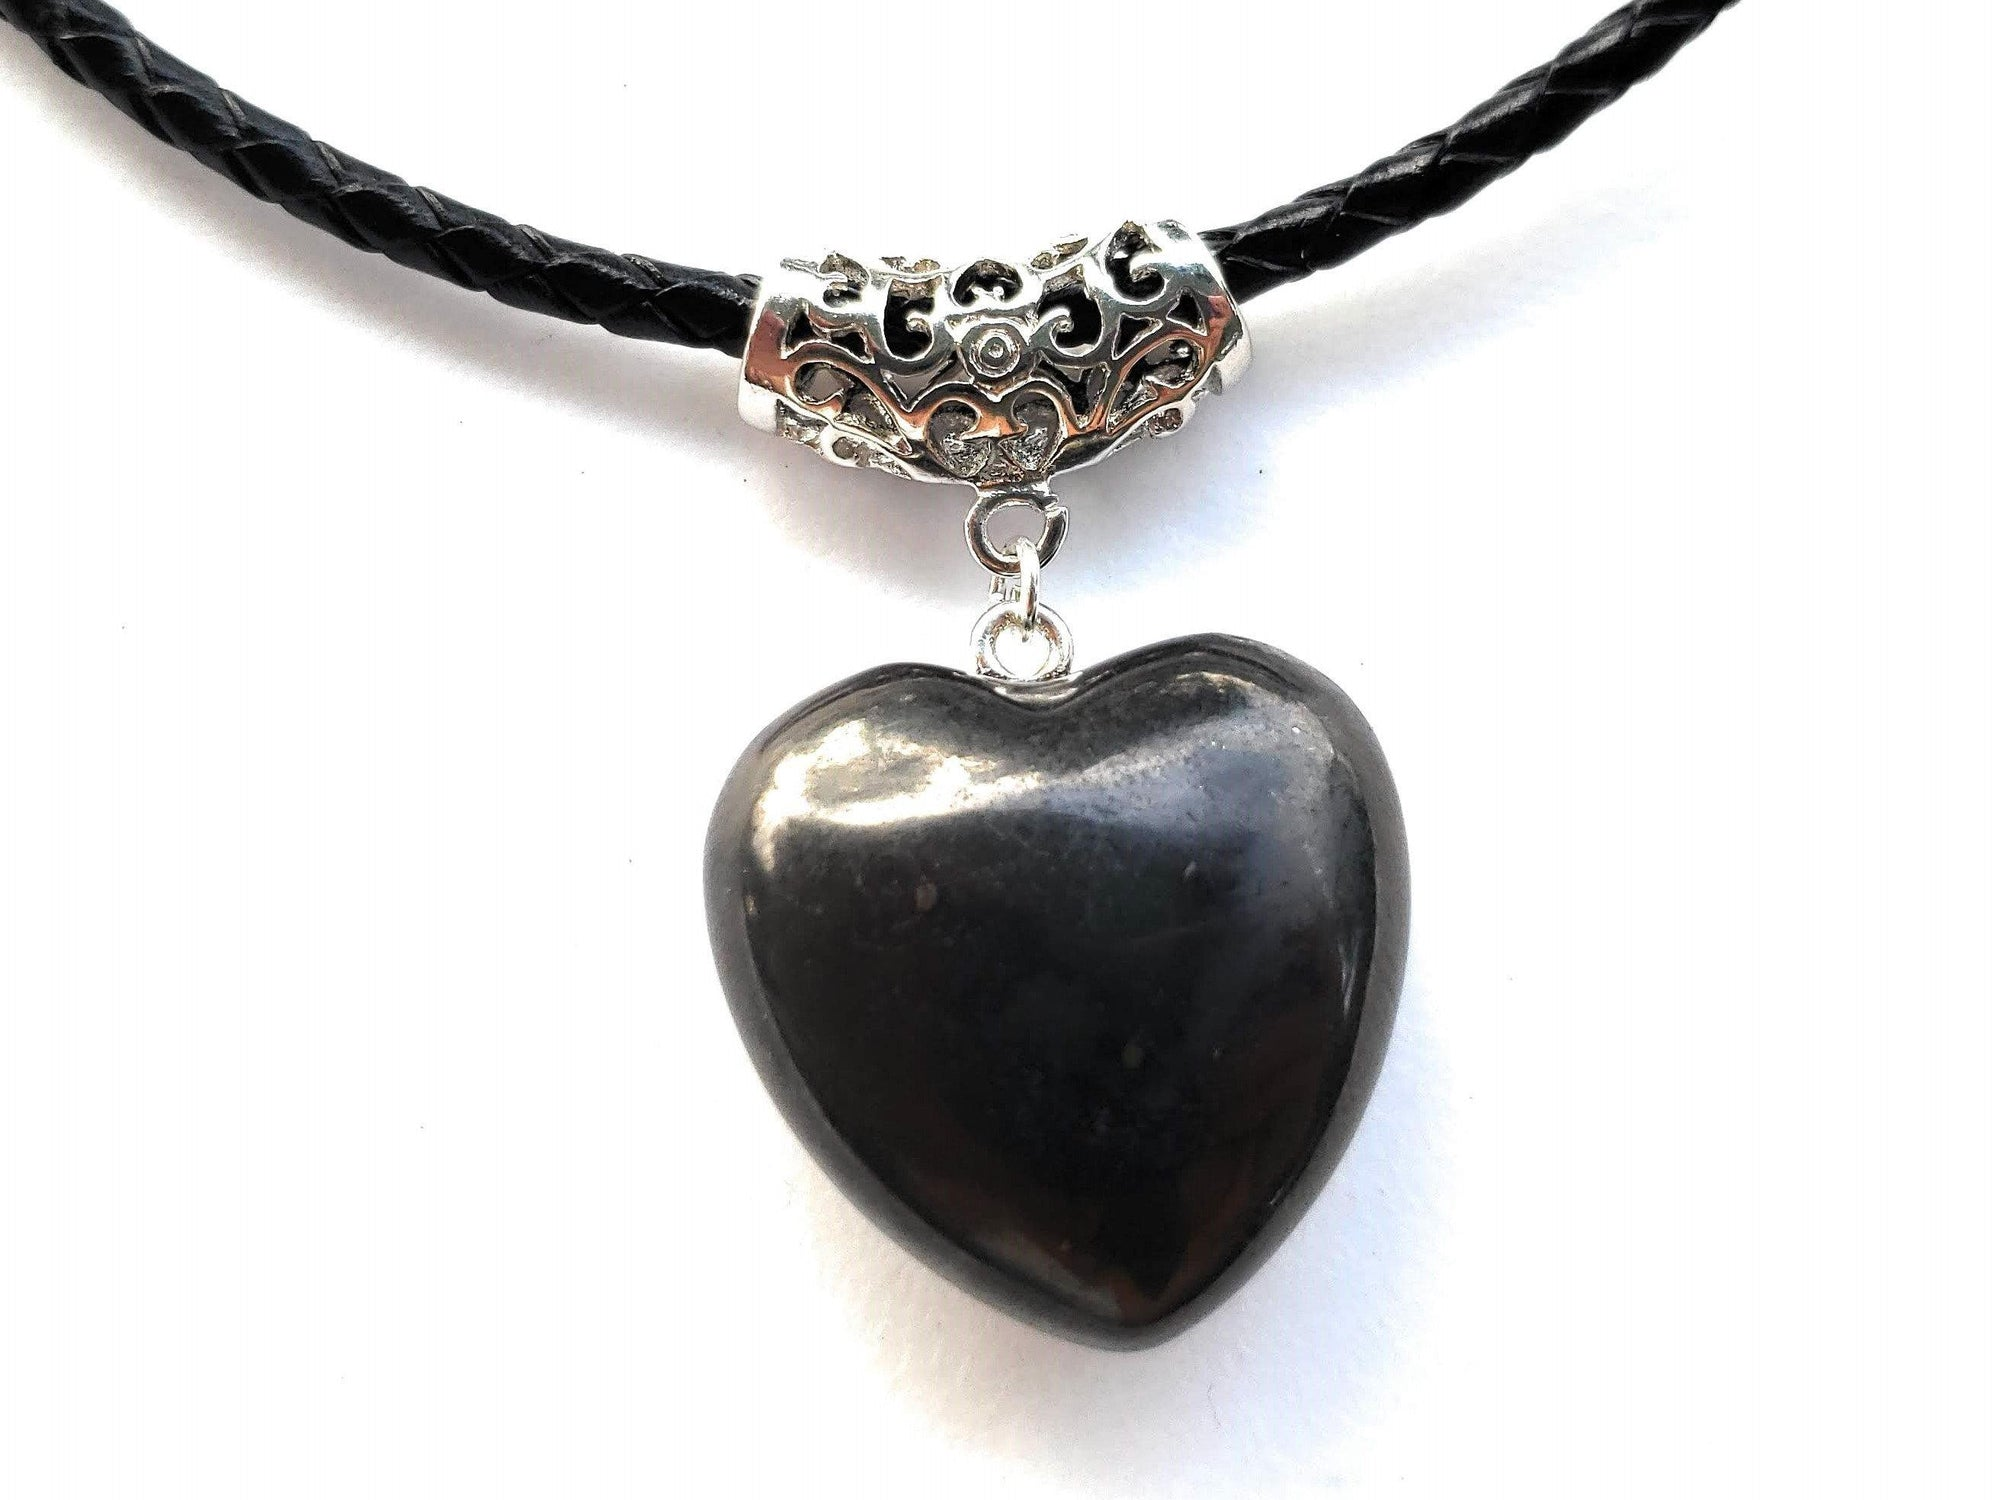 Puffy Heart Polished 100% Shungite Pendant and Leather Necklace - Karelia Creations